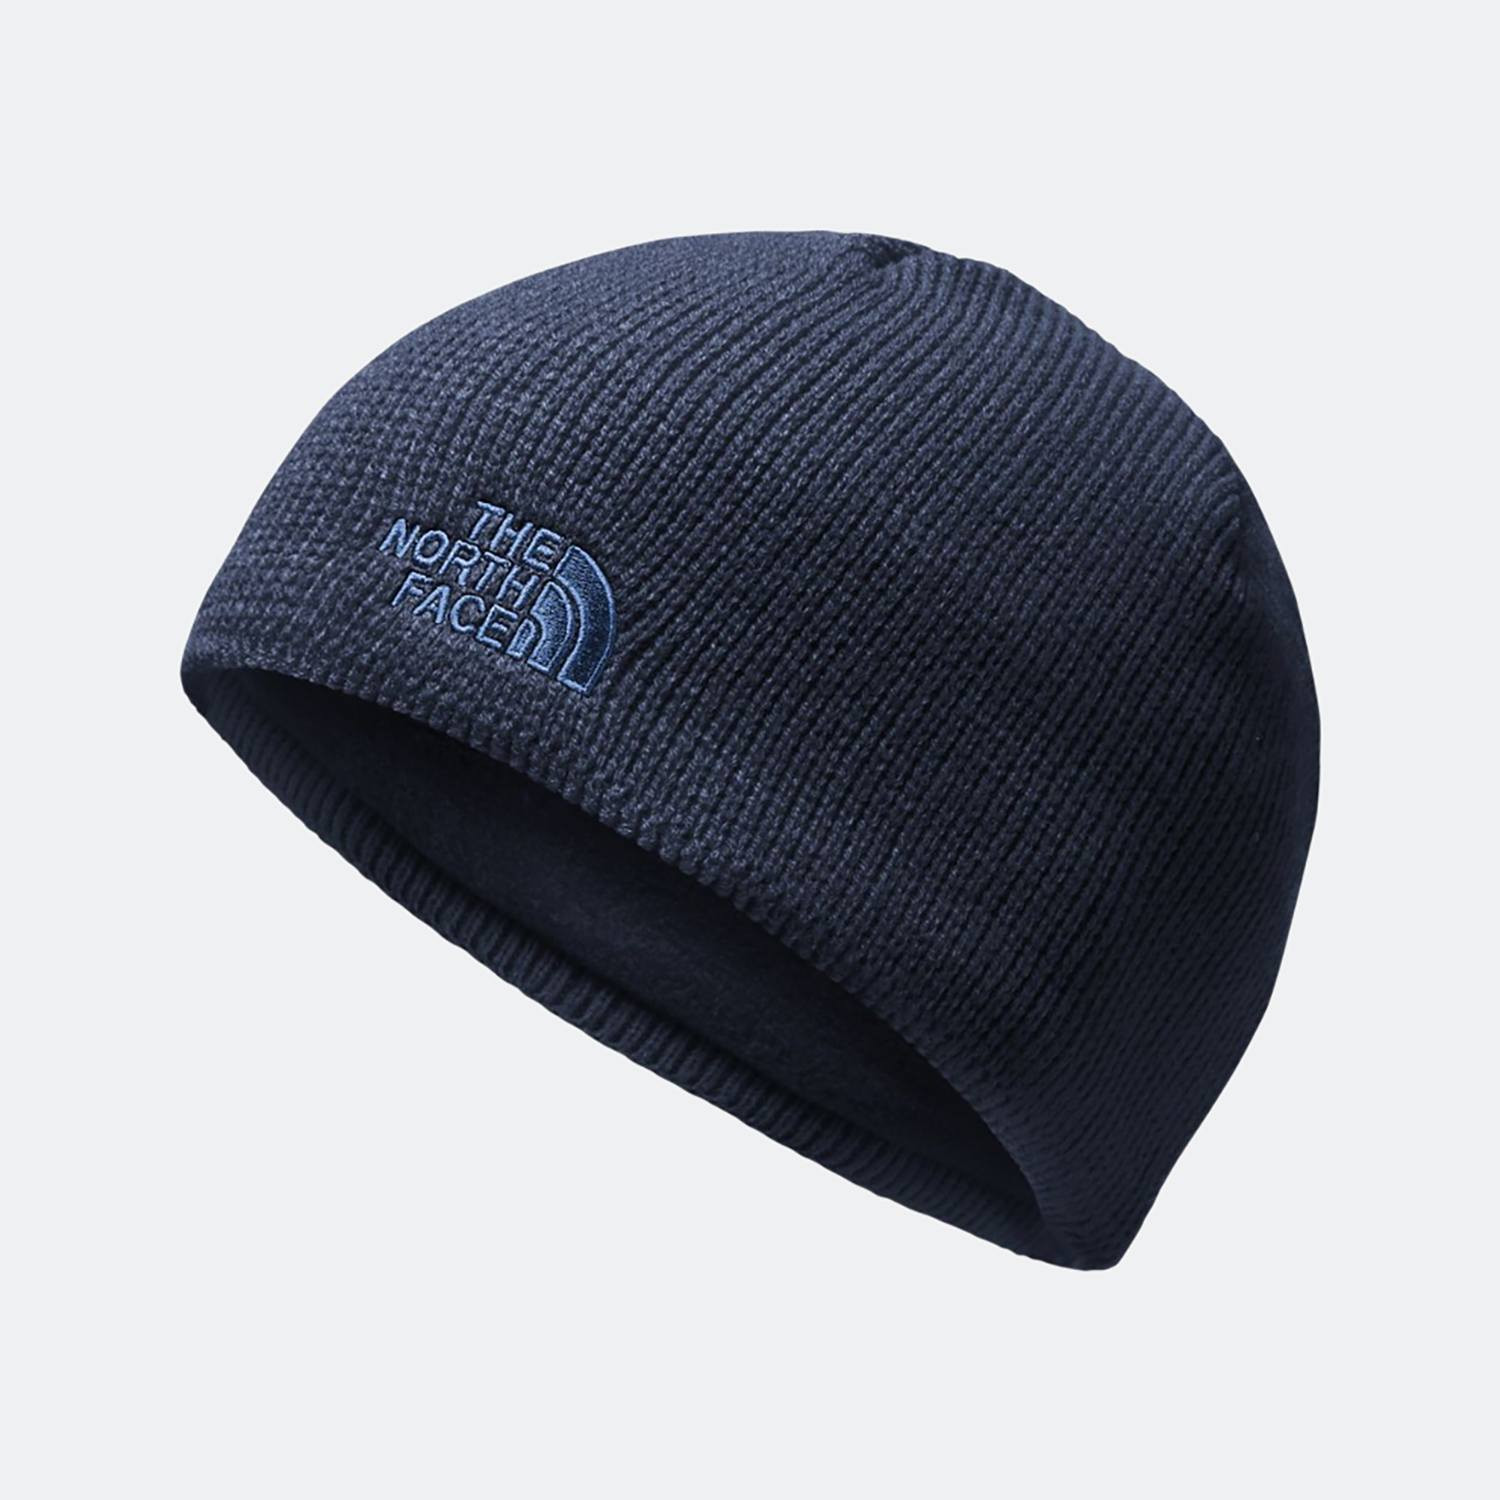 THE NORTH FACE Youth Bones Beanie (9000019903_35978)